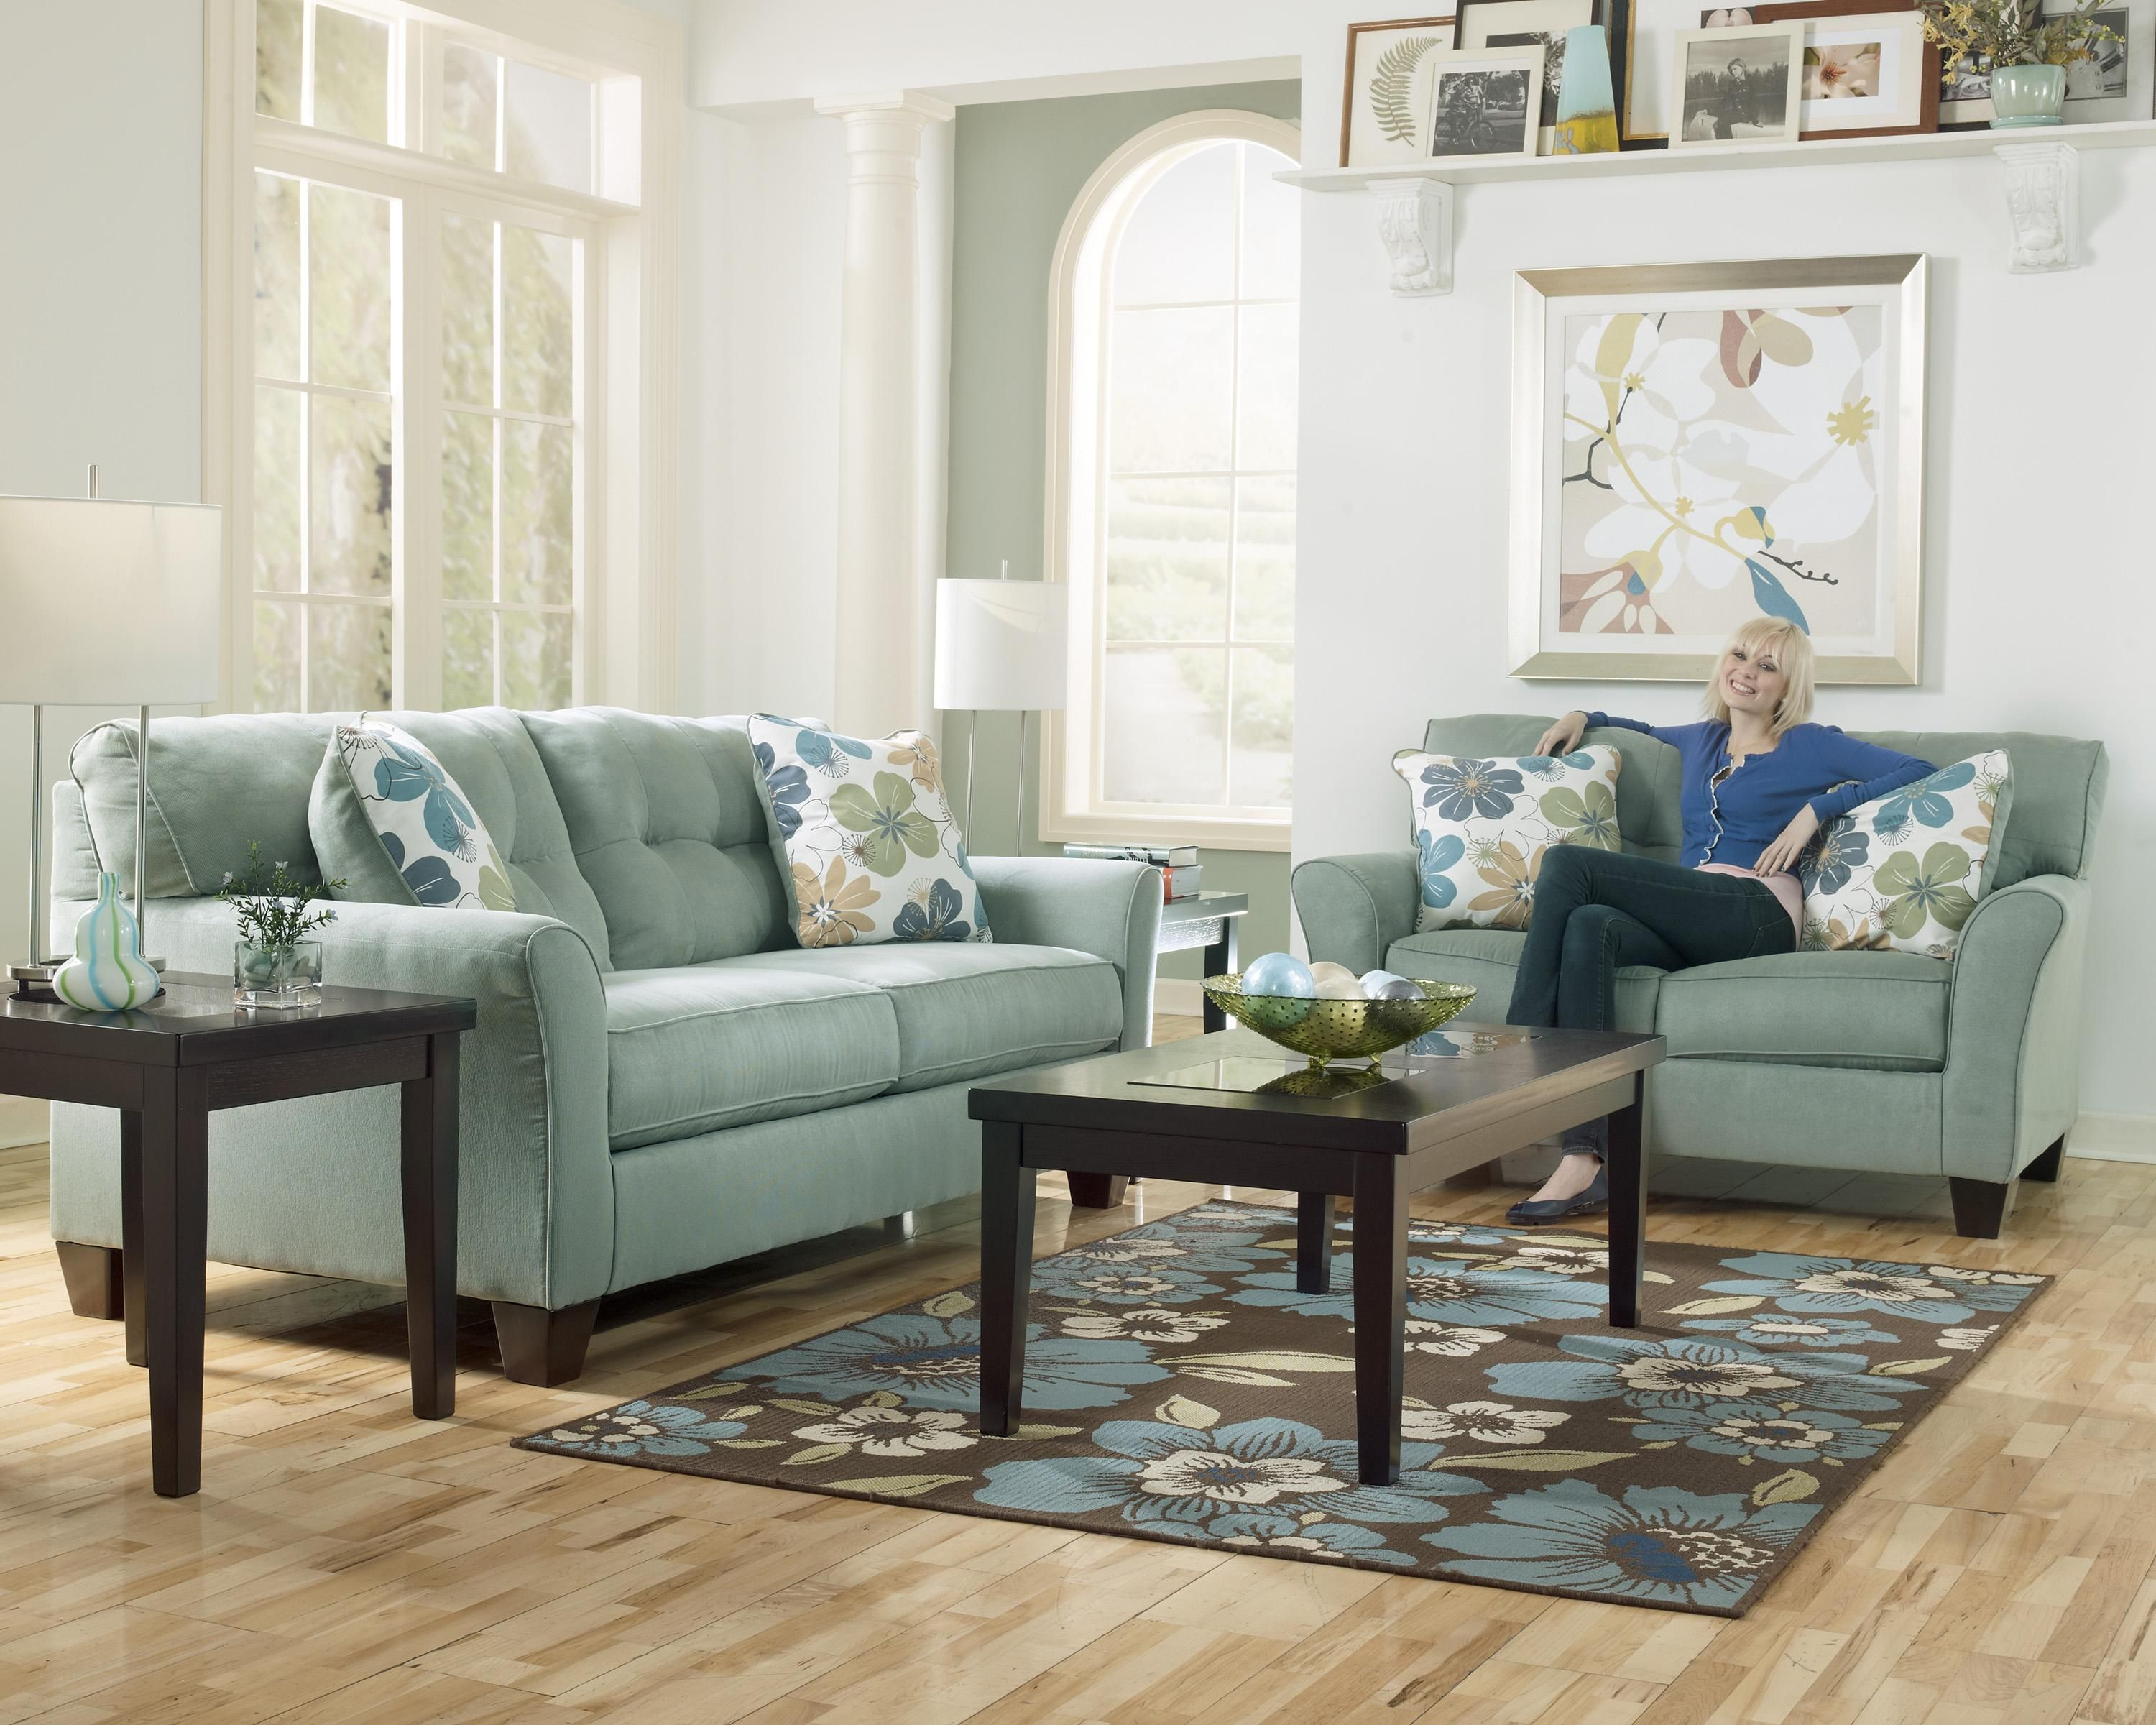 Kylee By Signature Design By Ashley Furniture Aqua Teal Couch